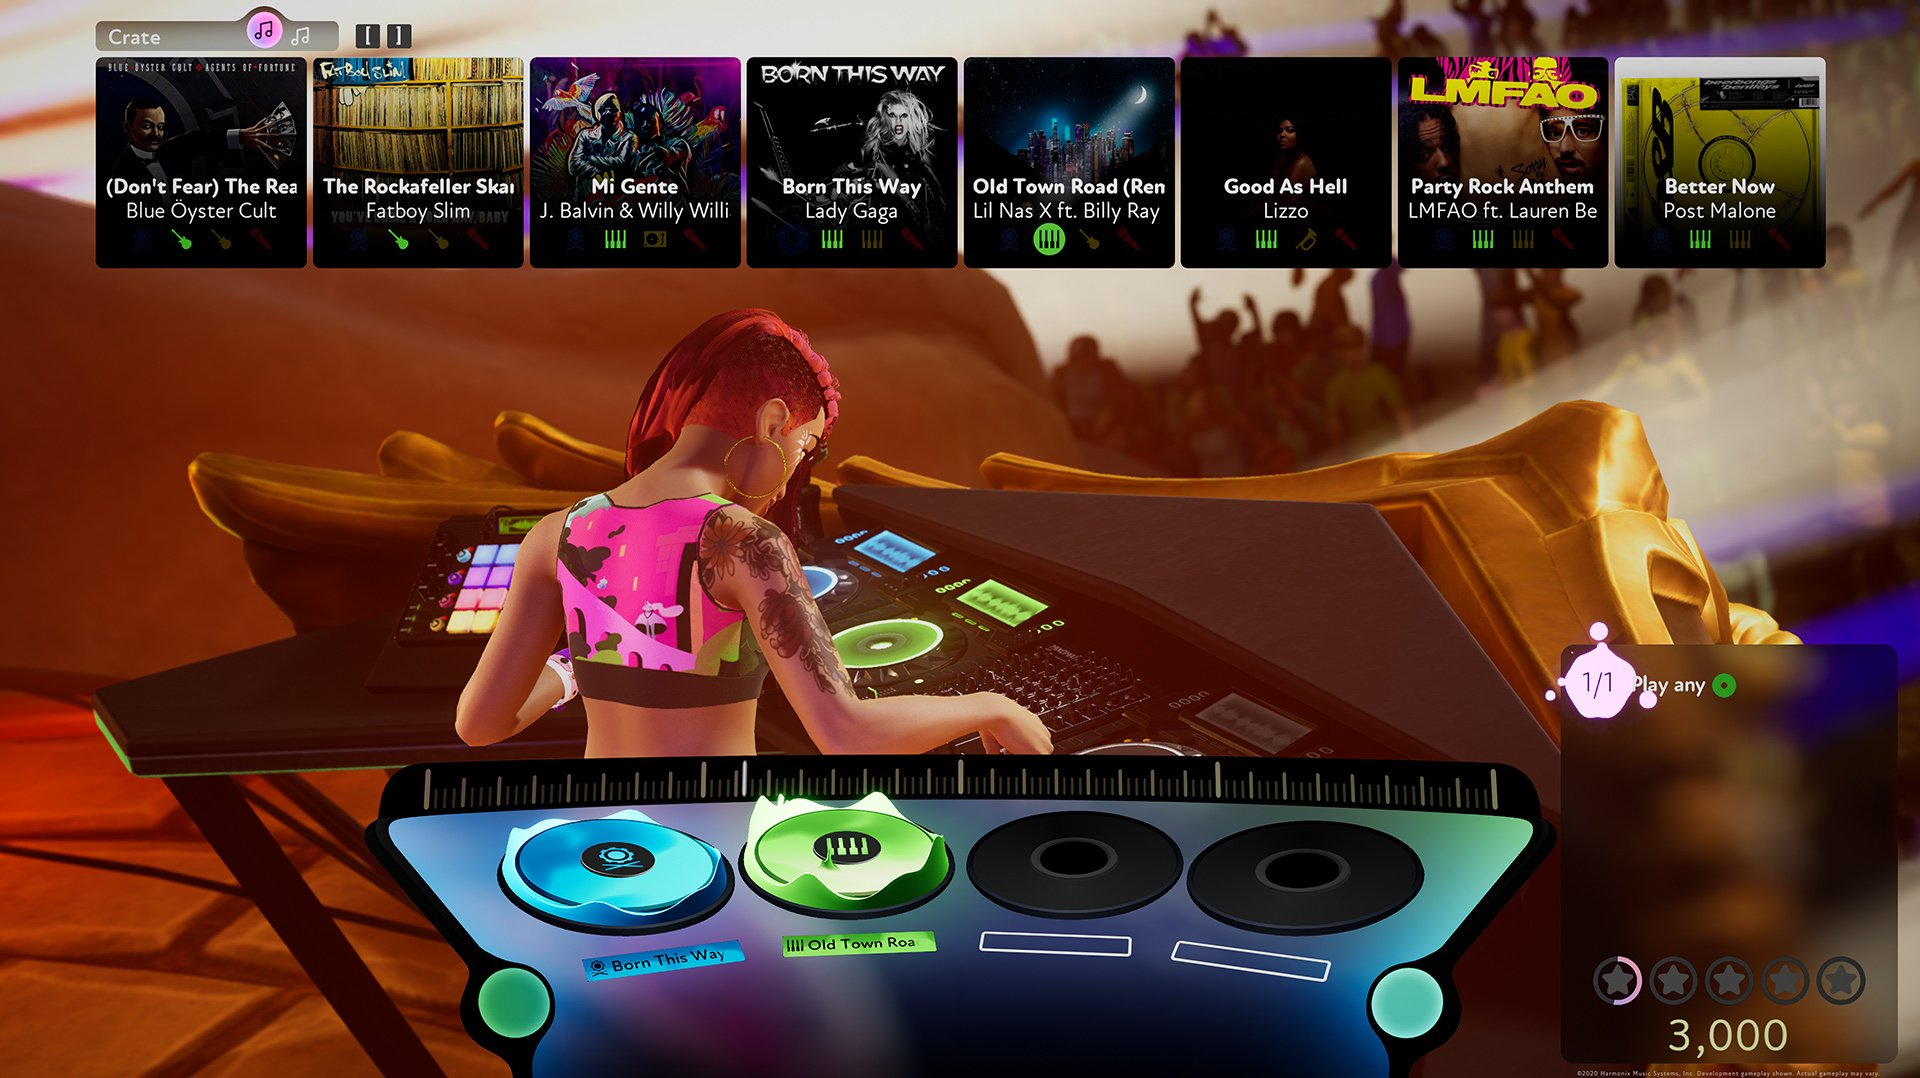 New interactive DJ video game, FUSER, announced